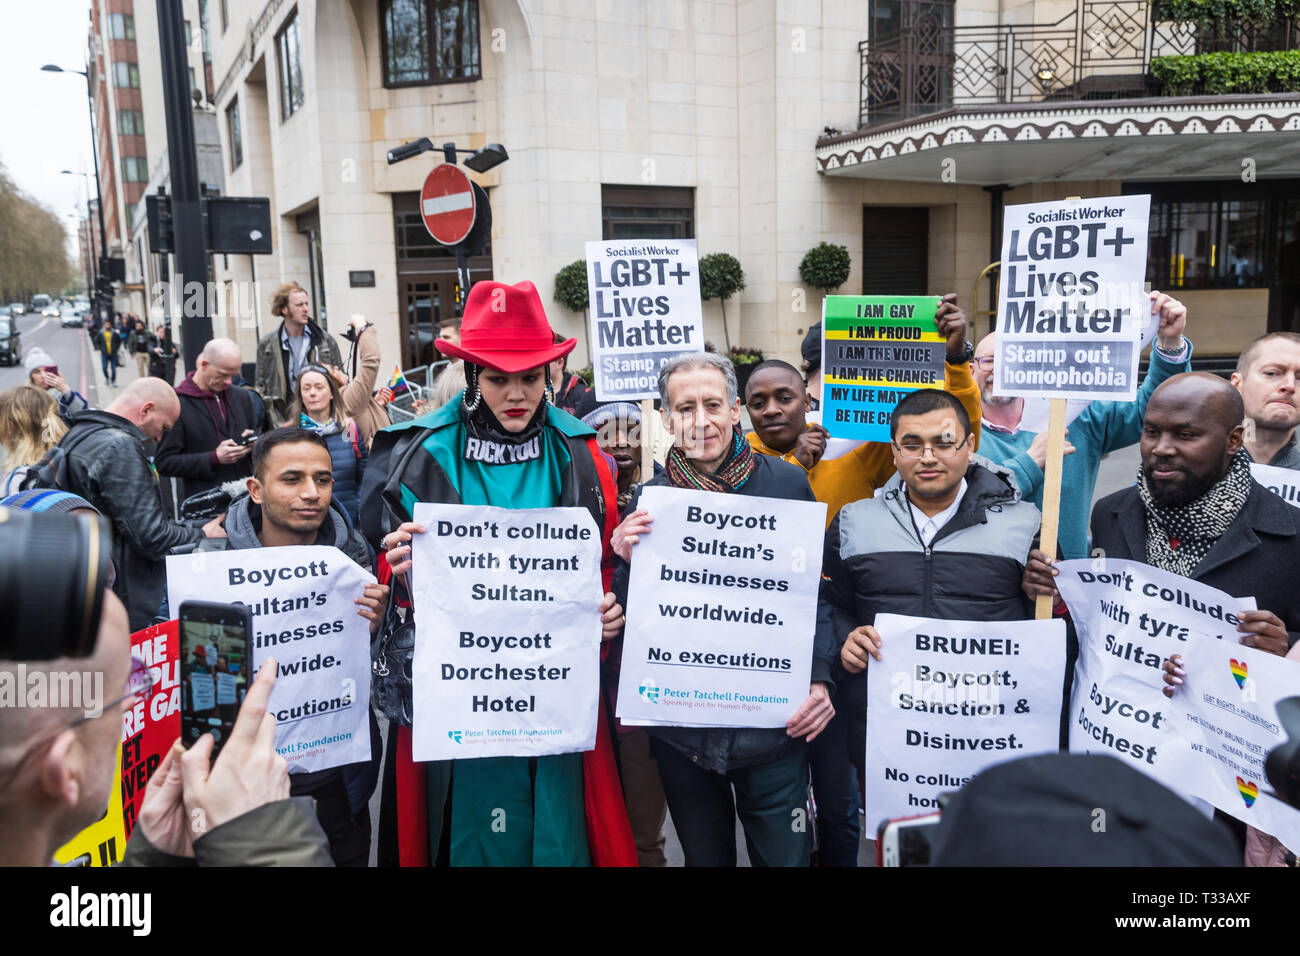 Daniel Lismore and Peter Tatchell at the protest outside The Dorchester hotel in London against the new Brunei anti-gay laws - 6 Apr 2019 - Stock Image